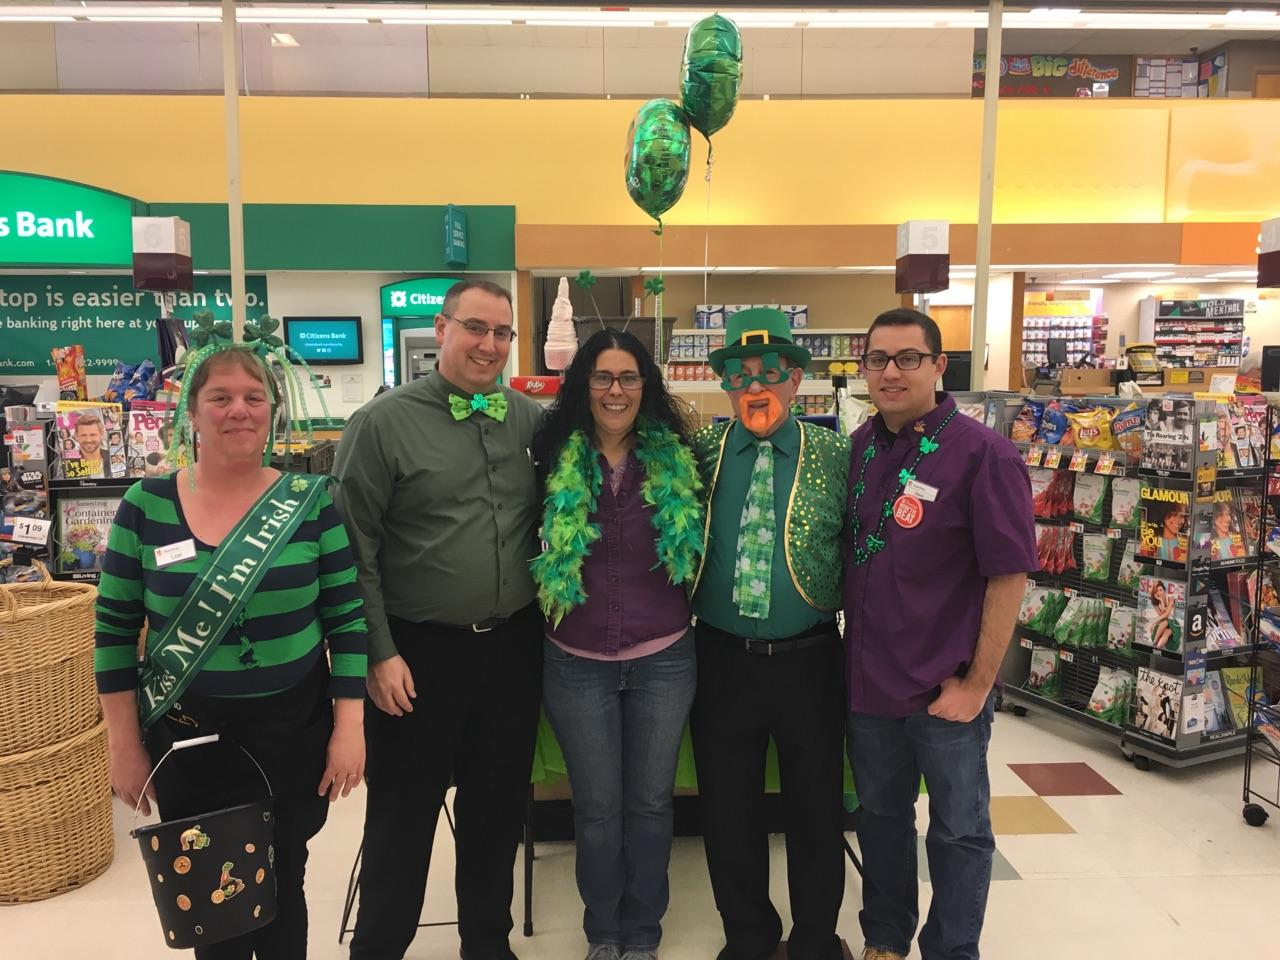 Happy St. Patrick's Day From Store 703